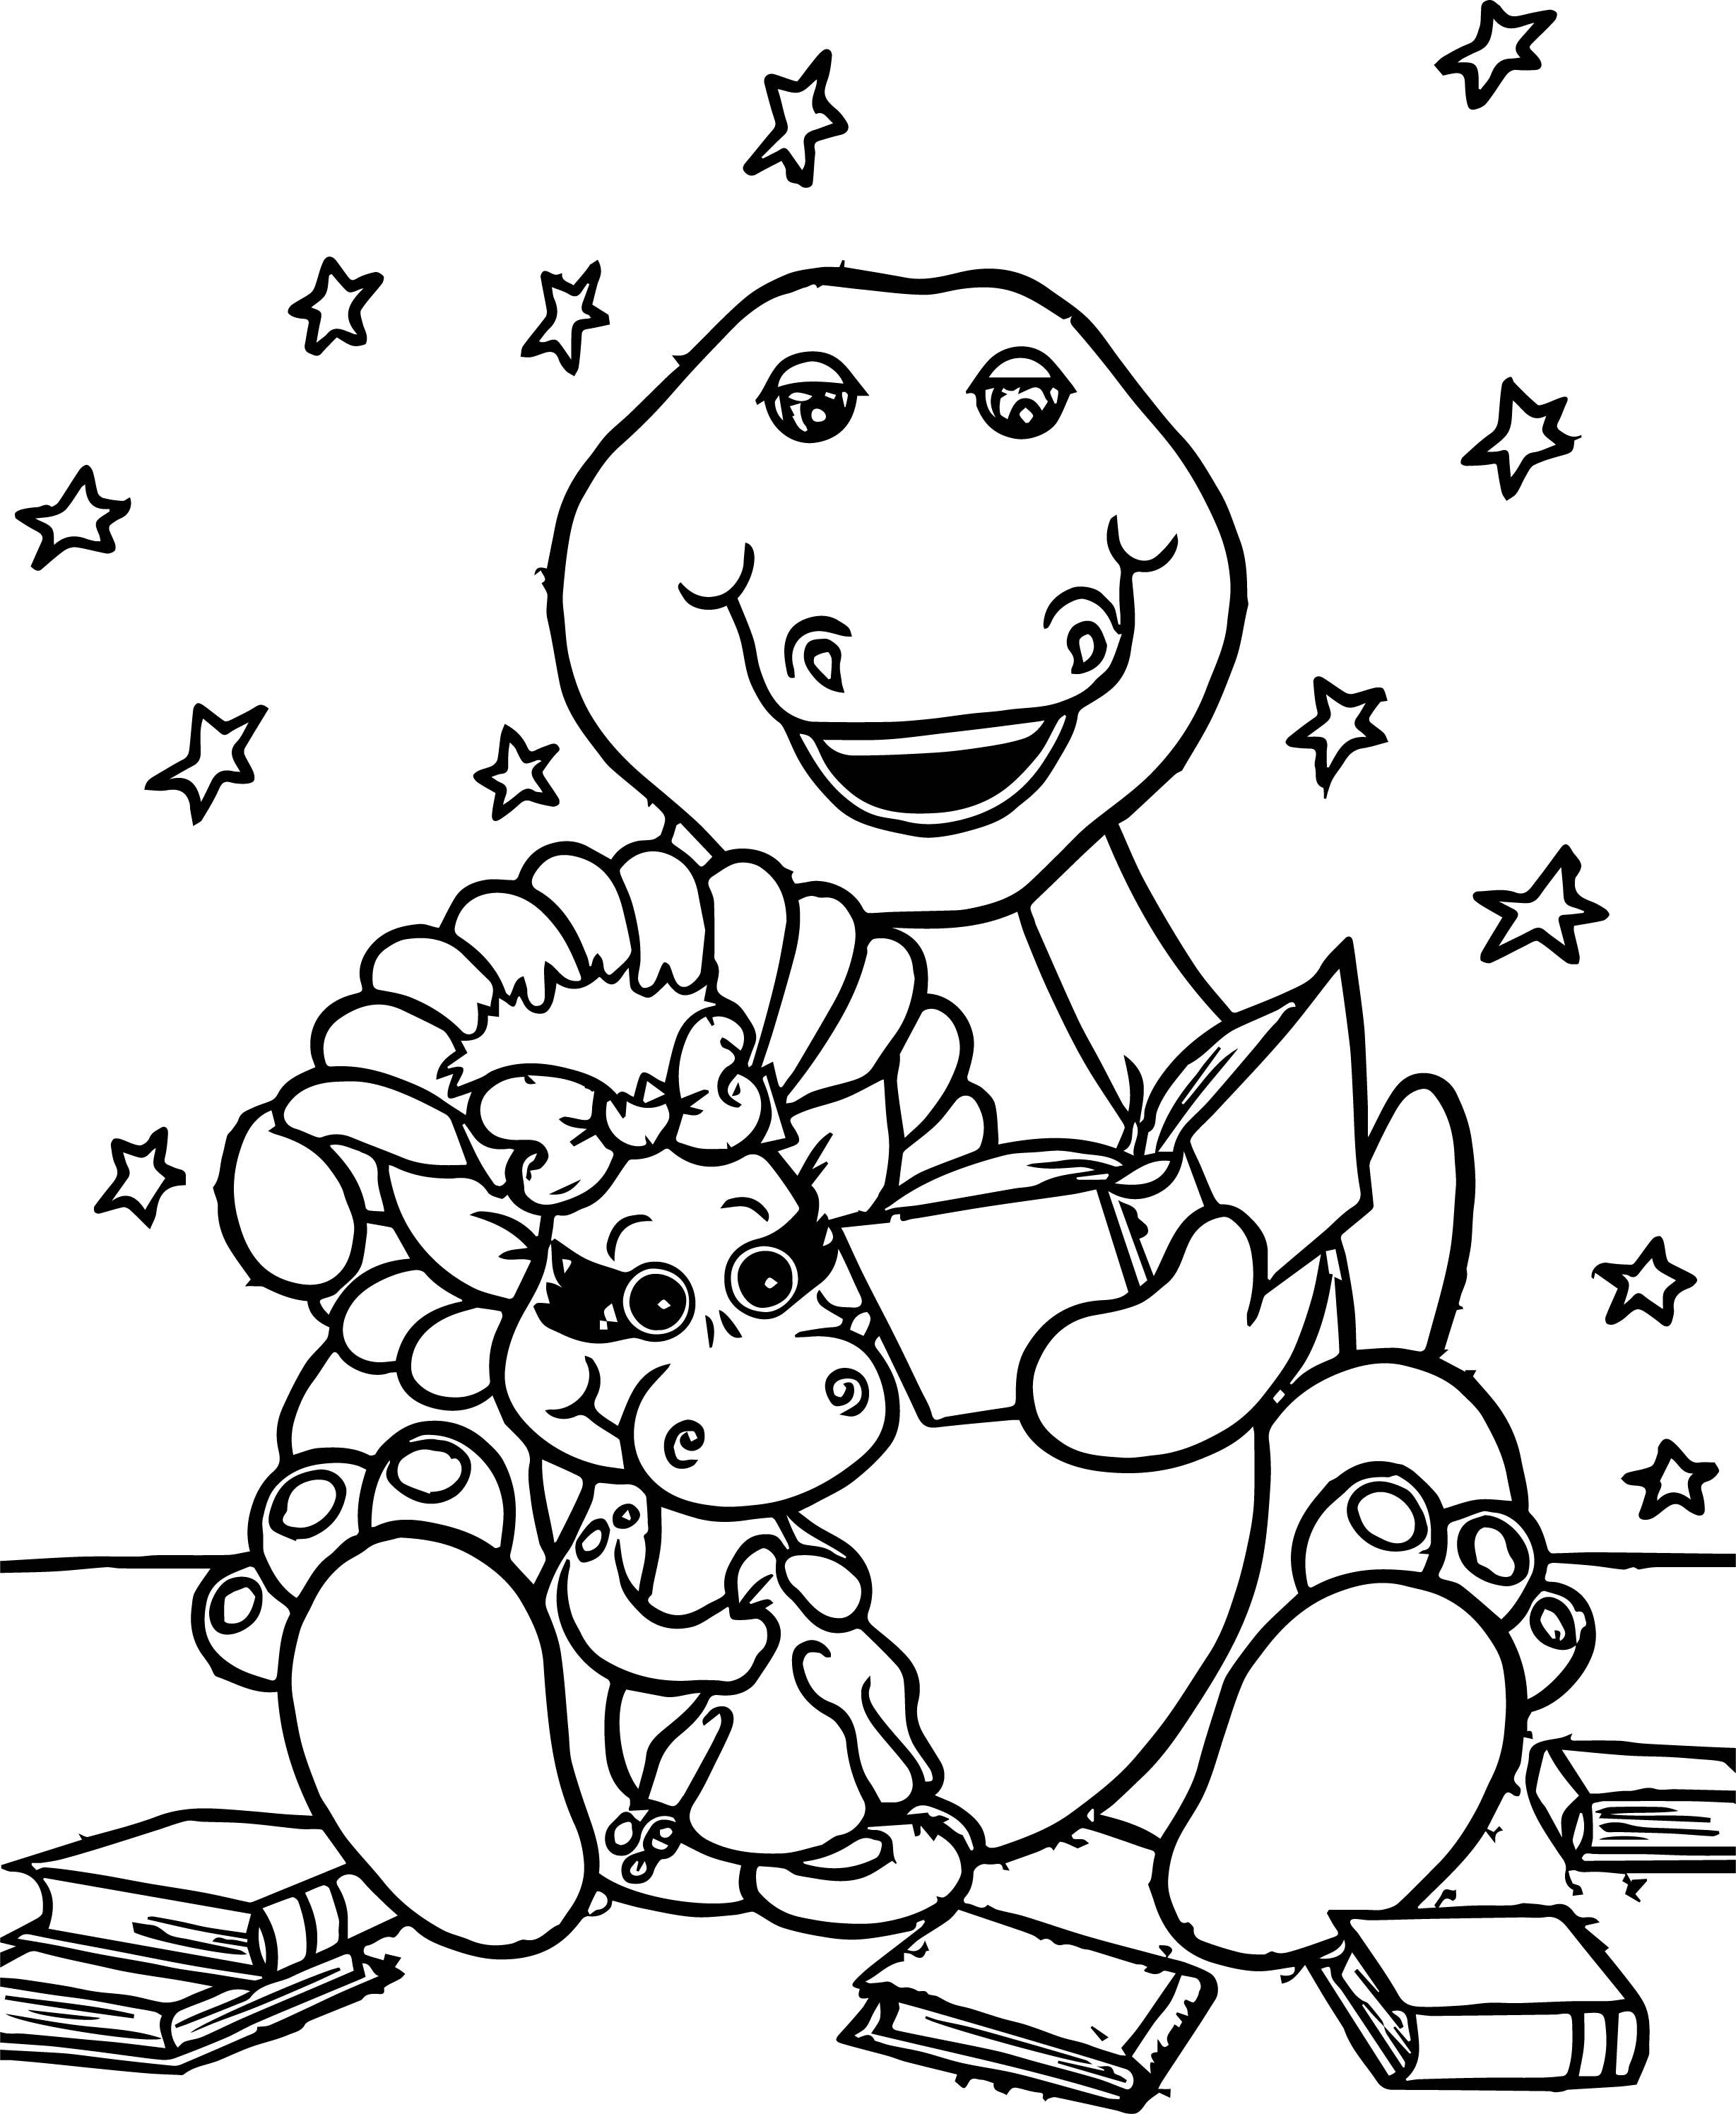 Awesome Barney Reads To Baby Bop Coloring Page Cartoon Coloring Pages Printable Coloring Pages Coloring Pages